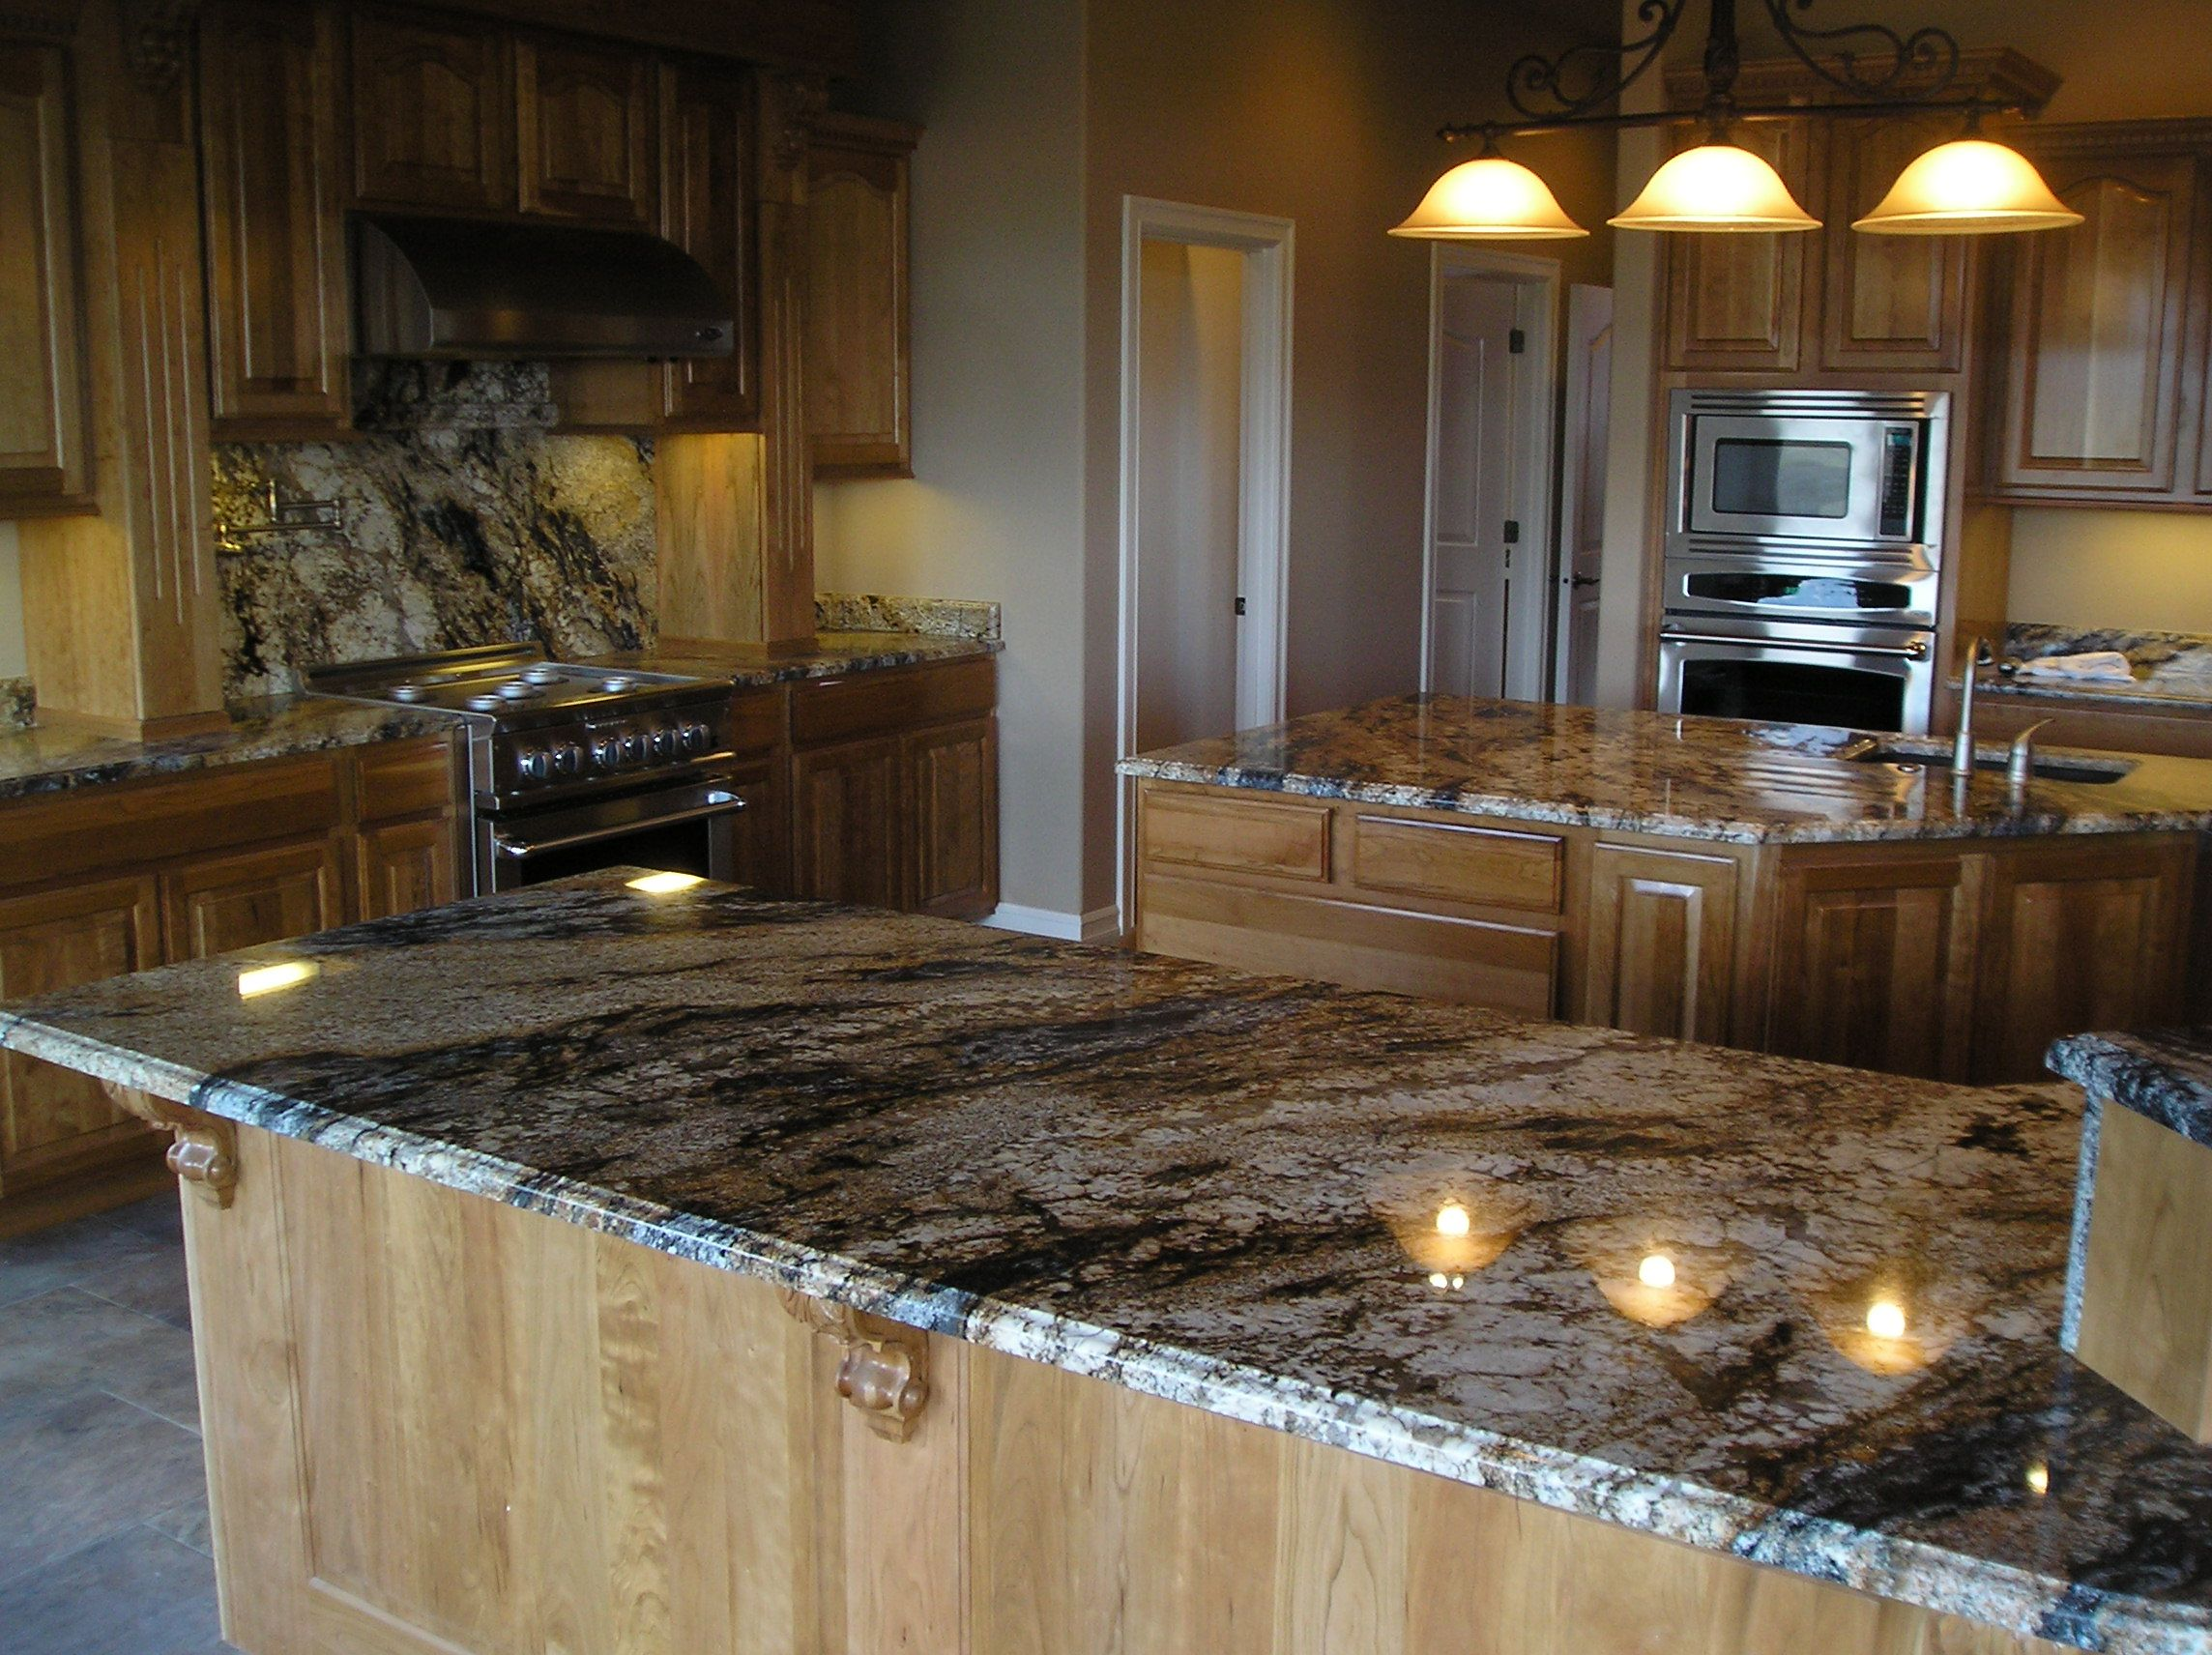 Light Maple Kitchen Cabinets Inexpensive Table Sets With A Granite That Has Little Blue